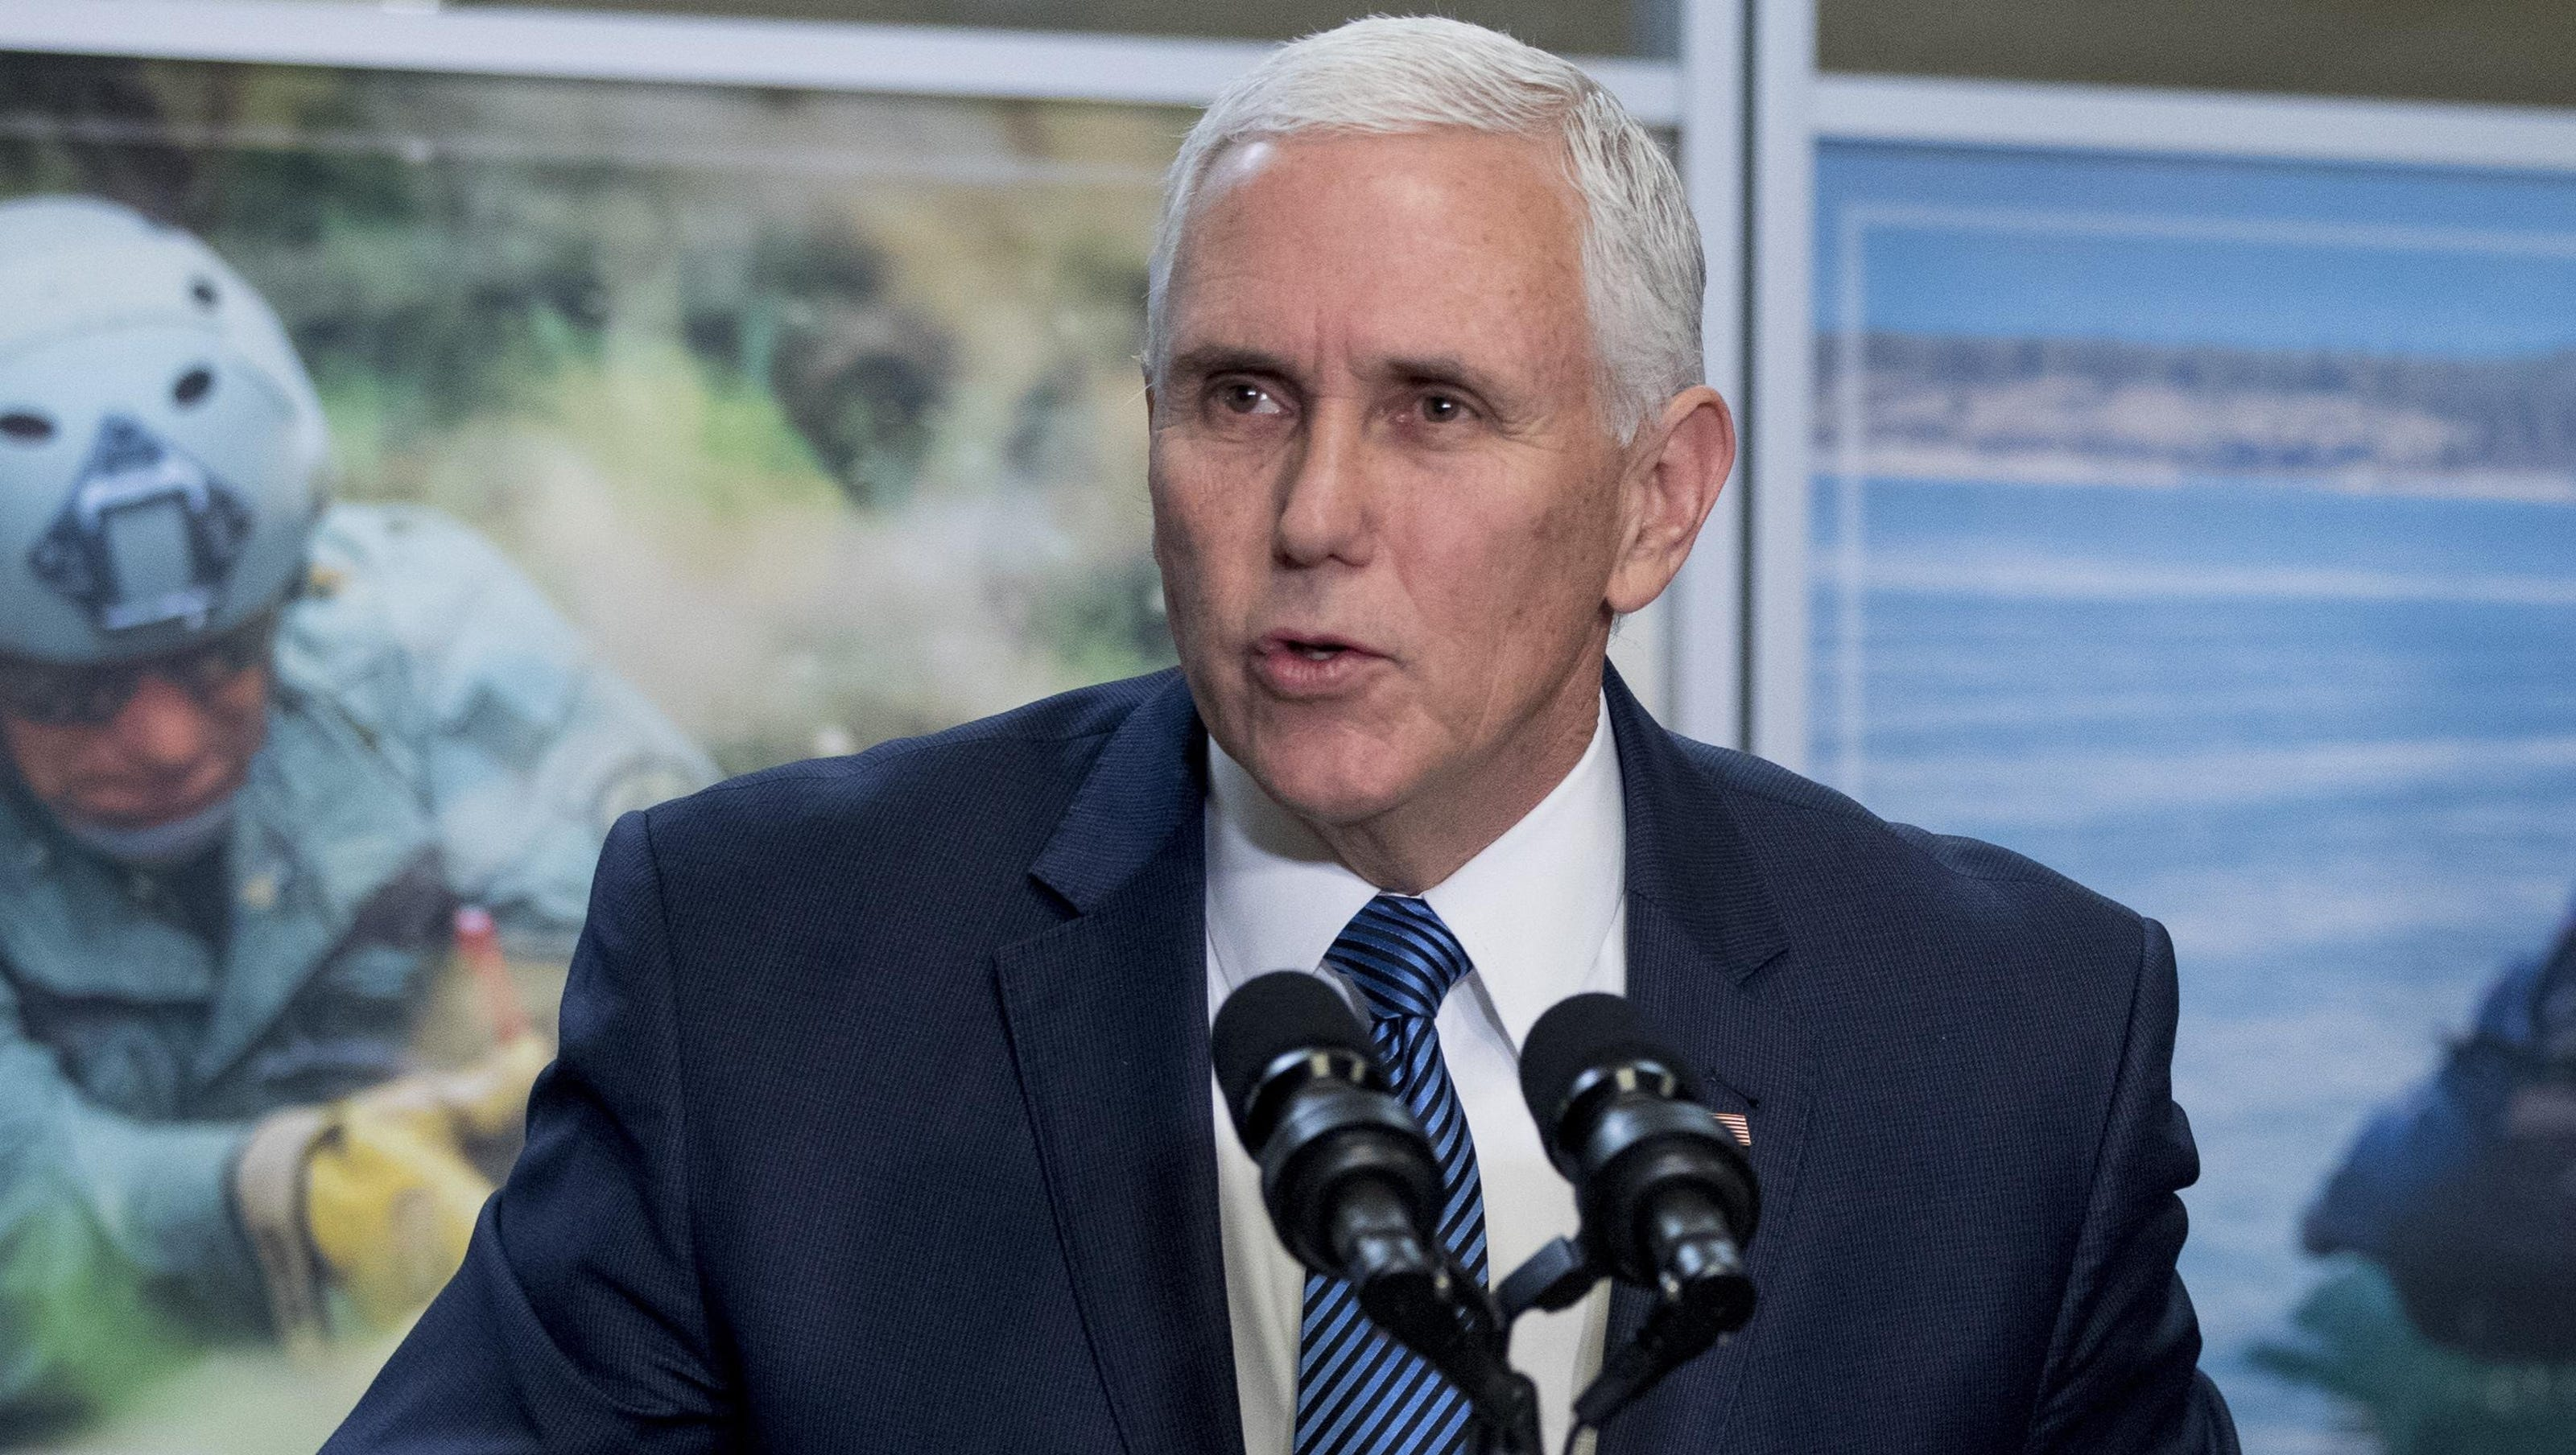 Source: Pence expected back in Michigan on Wednesday